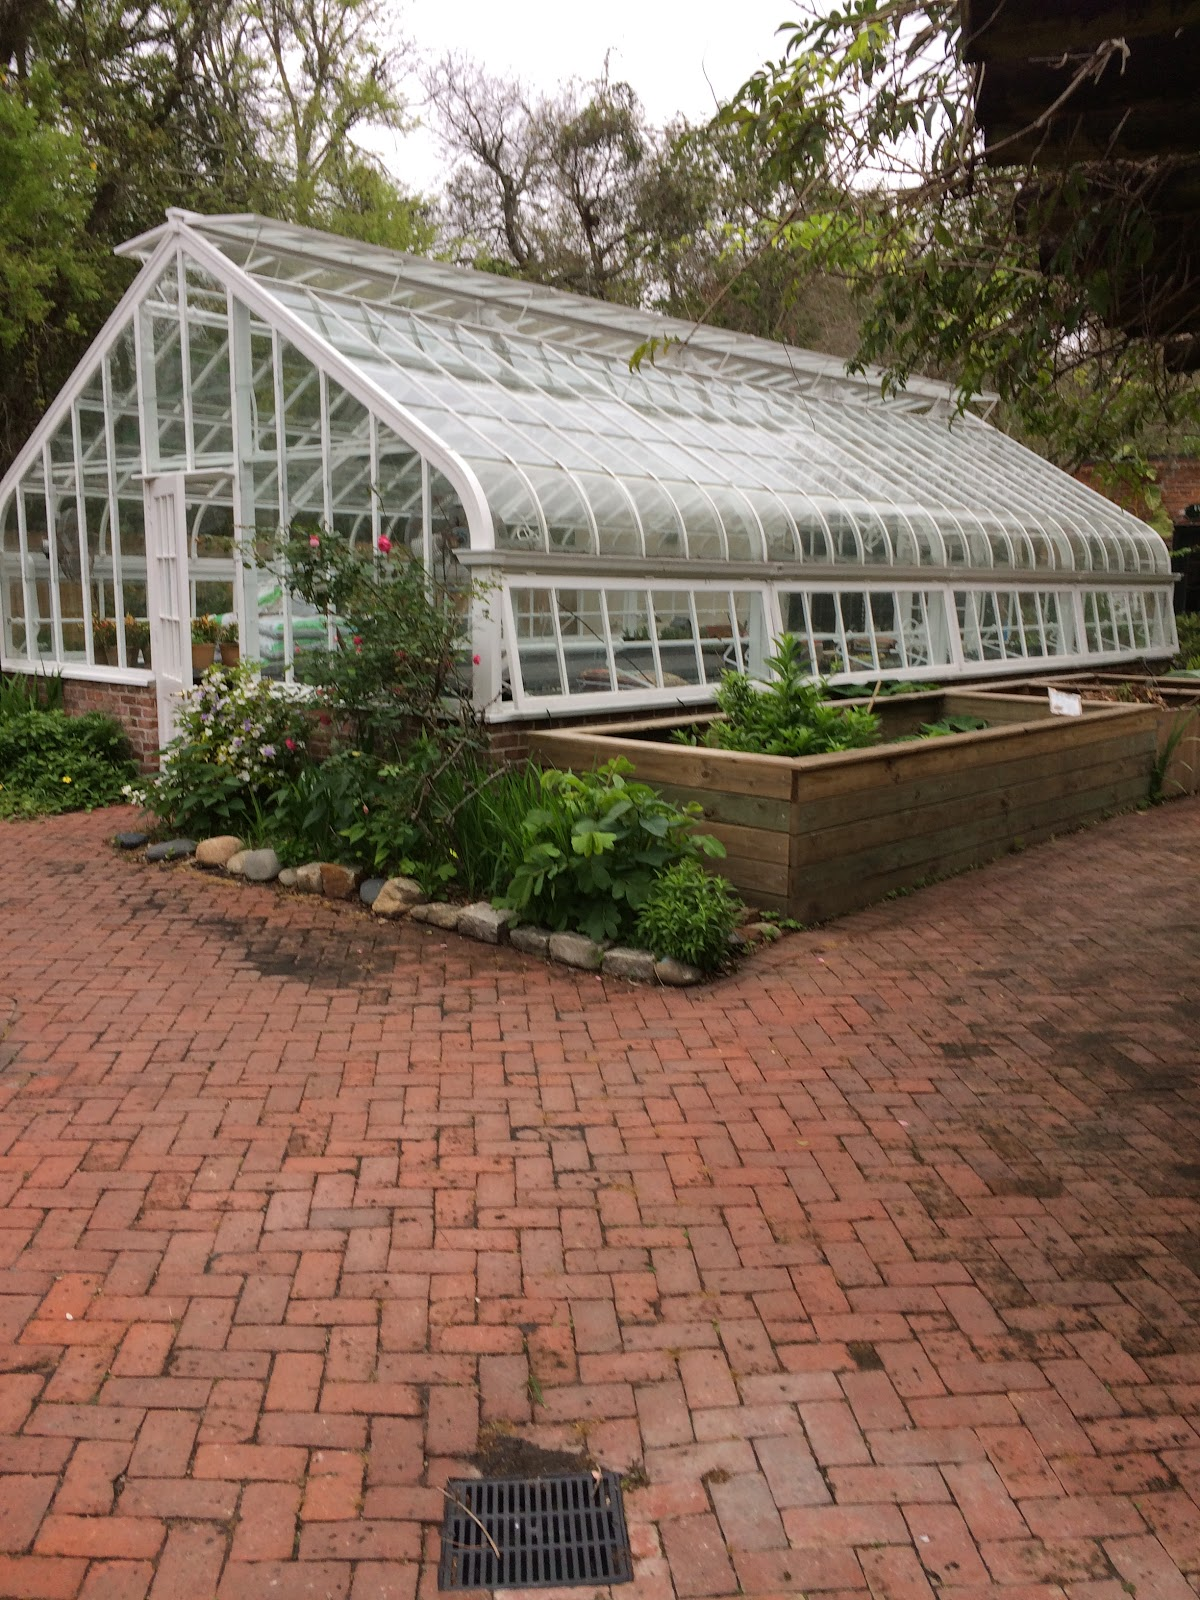 Original Sears Greenhouse At Longue Vue House U0026 Gardens